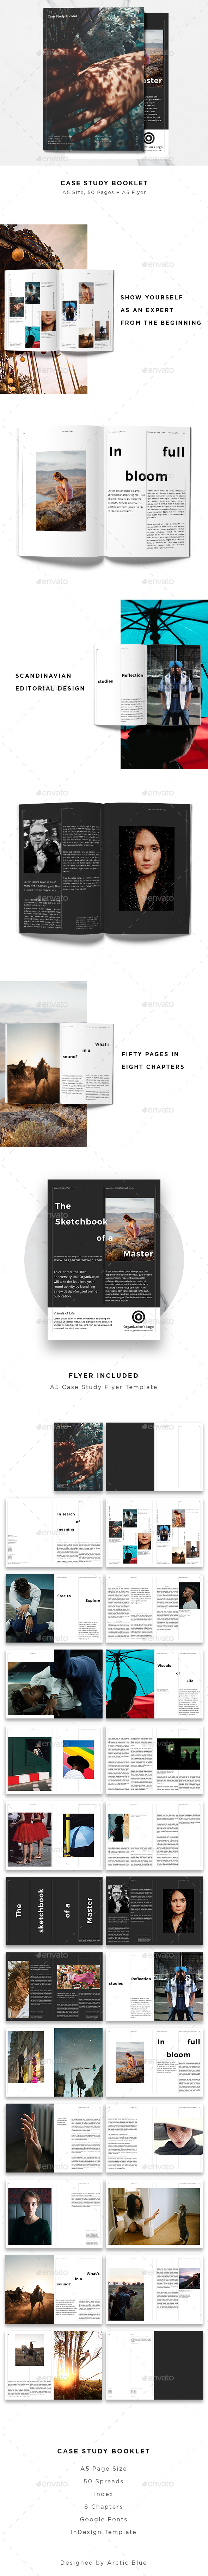 GraphicRiver Case Study Booklet & Flyer 20669075